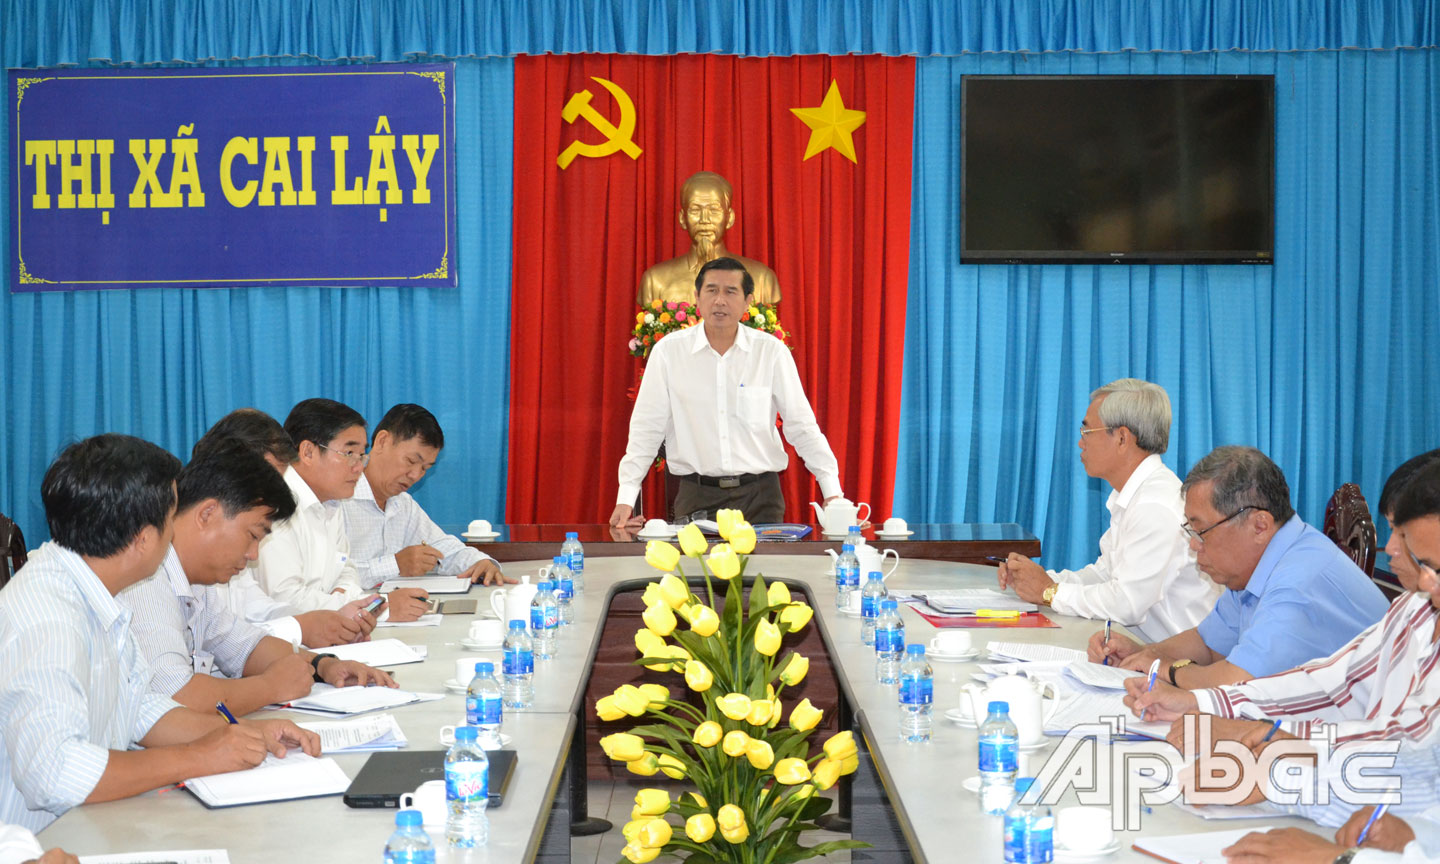 Chairman of the PPC Le Van Huong speaks at the meeting with the Cai Lay town People's Committee